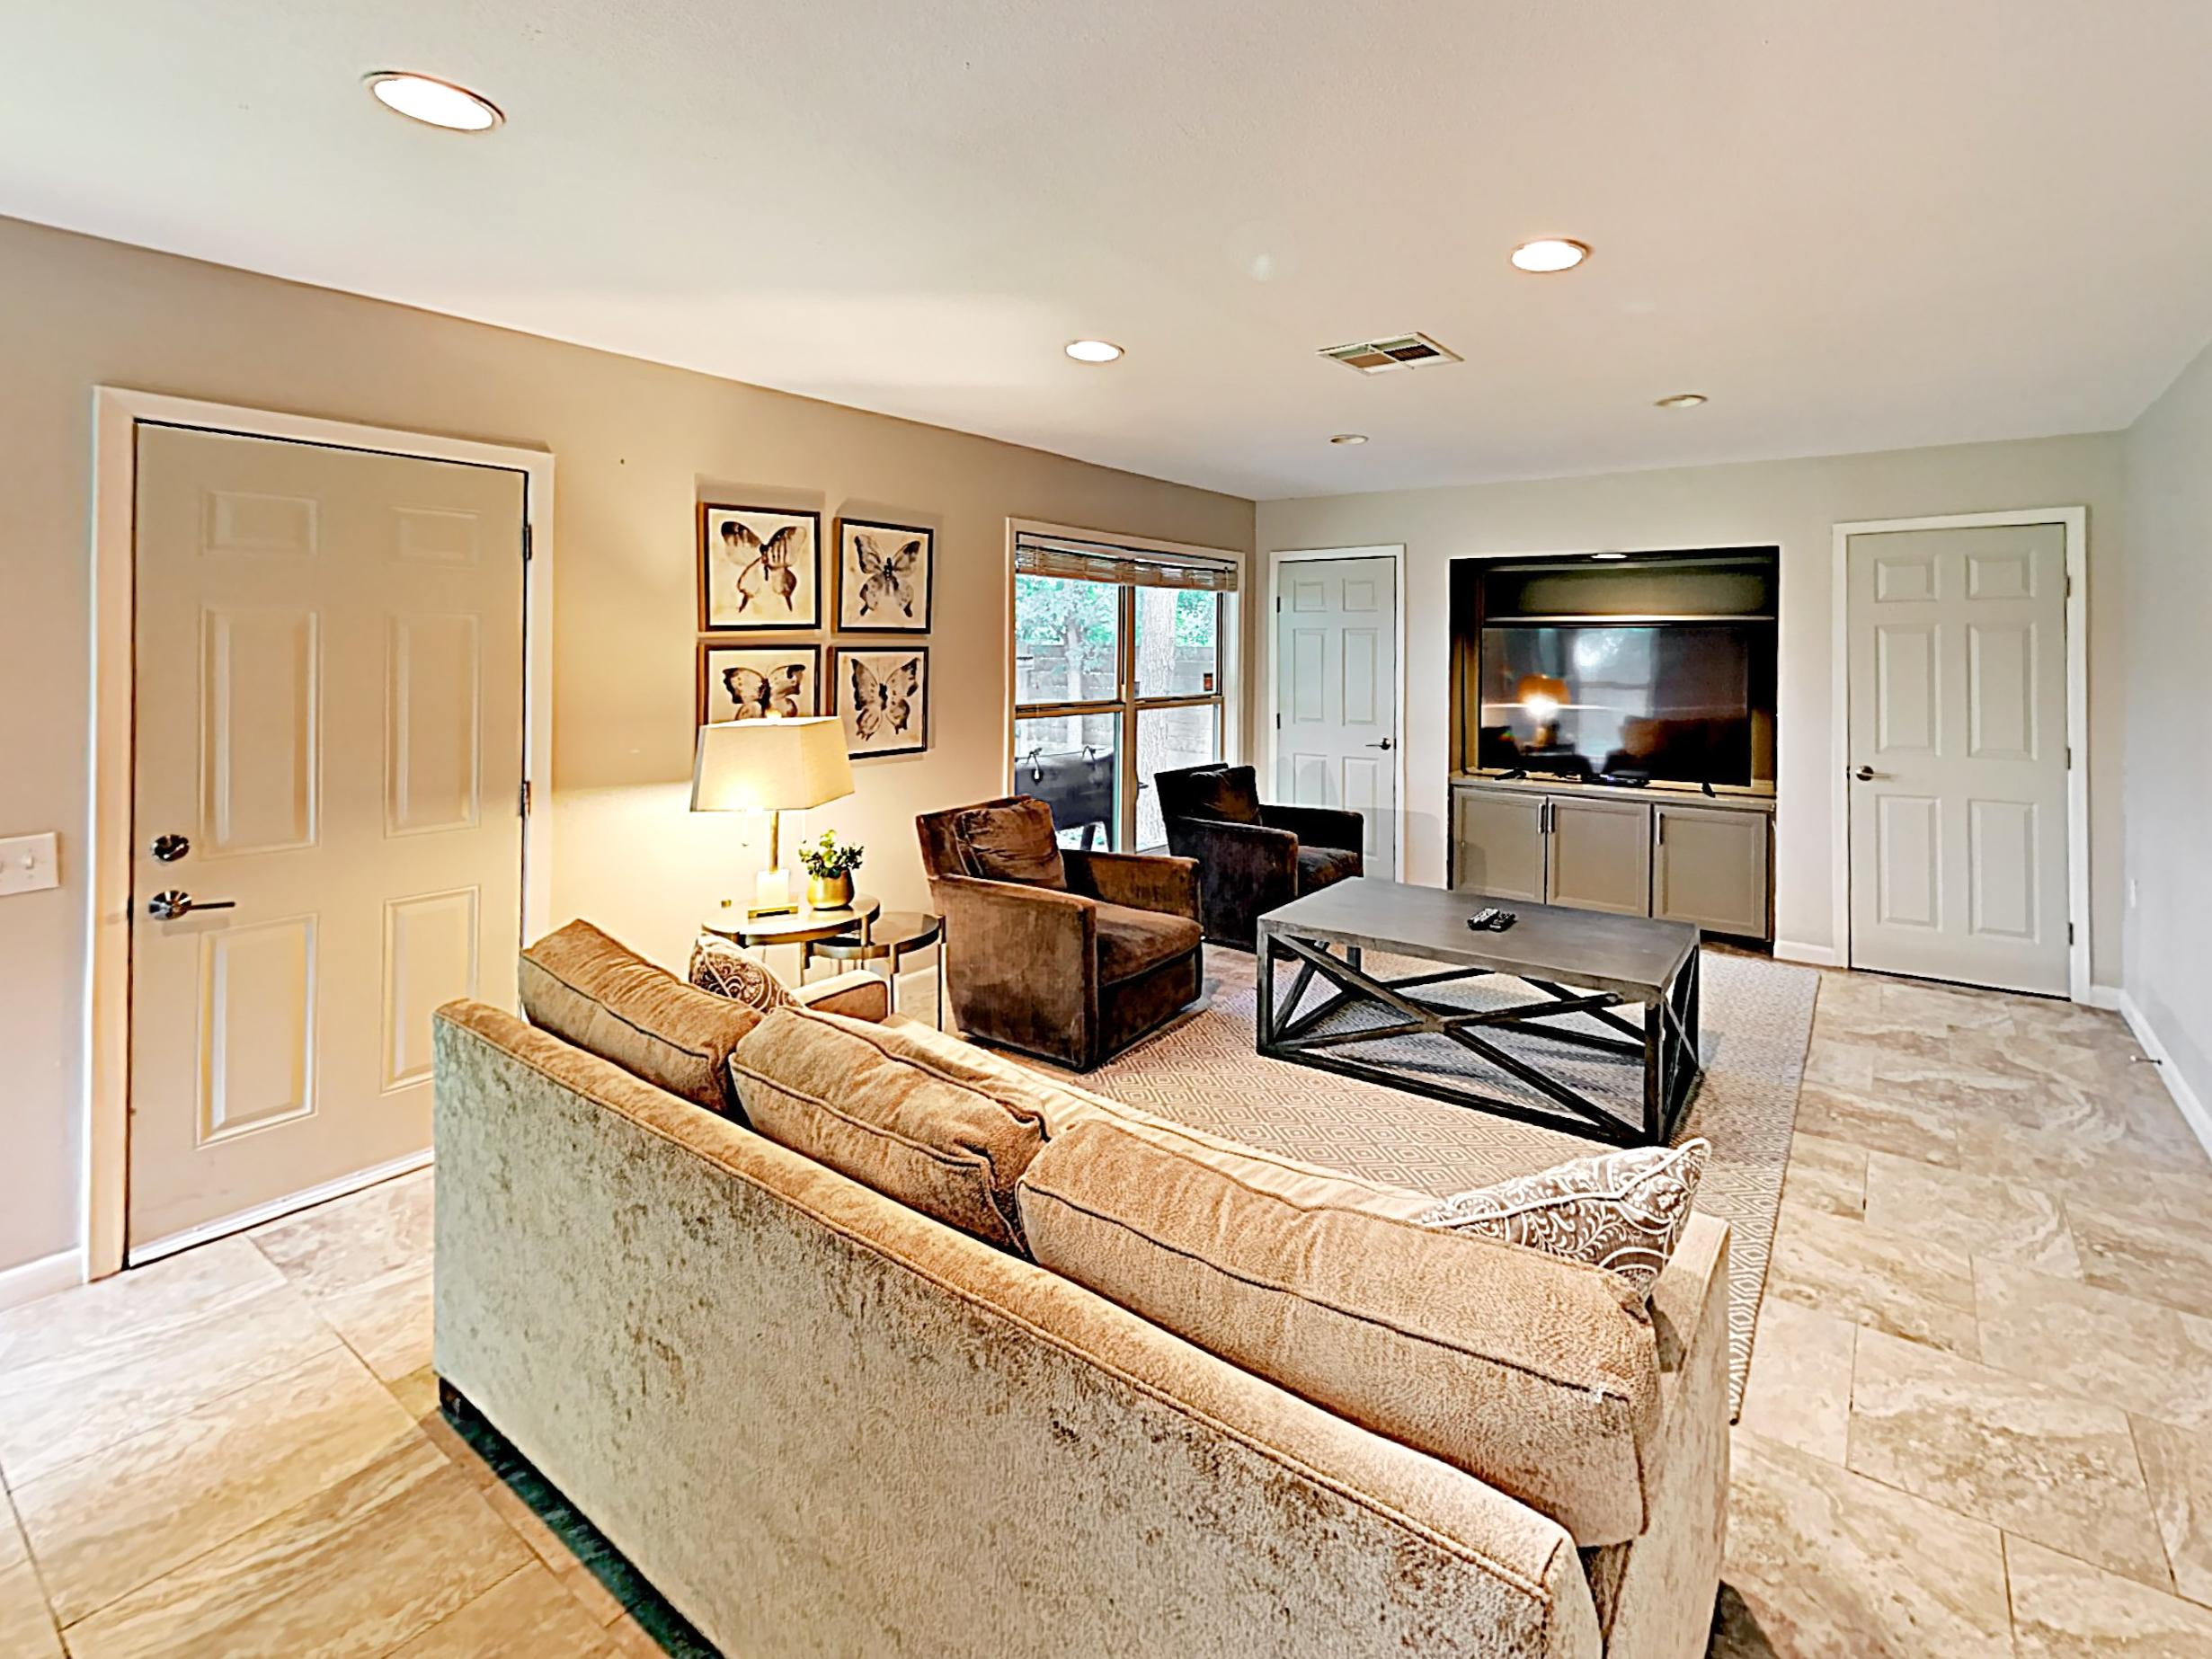 You'll find ample plush seating in the main living area.